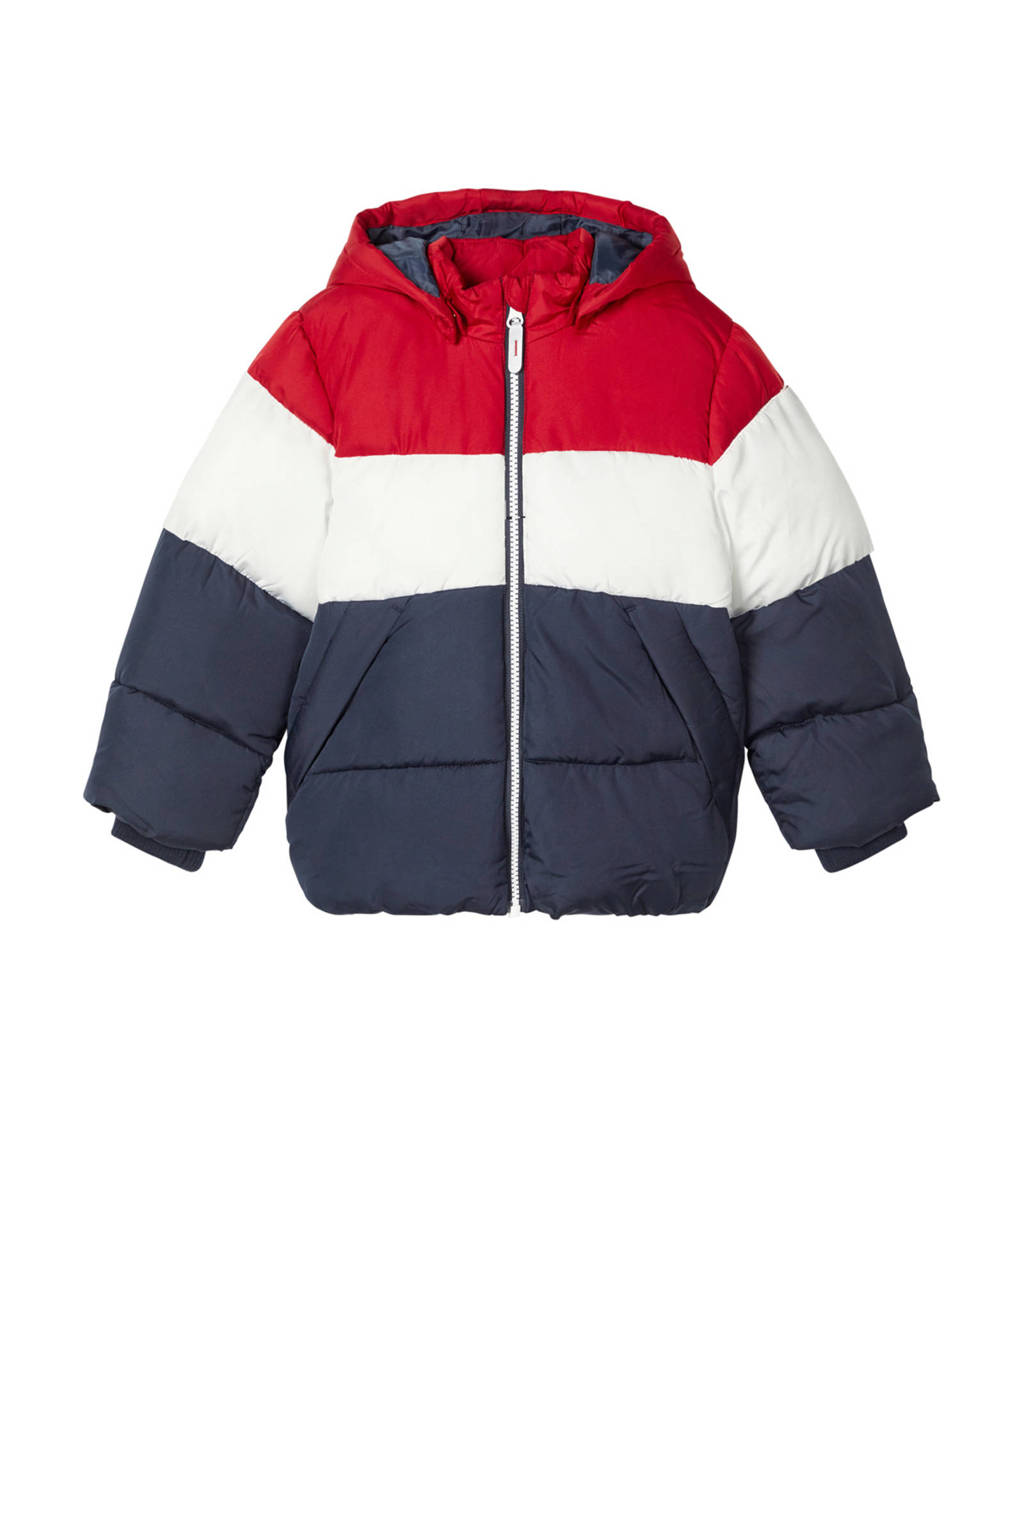 NAME IT MINI gewatteerde winterjas May rood/wit/donkerblauw, Rood/wit/donkerblauw